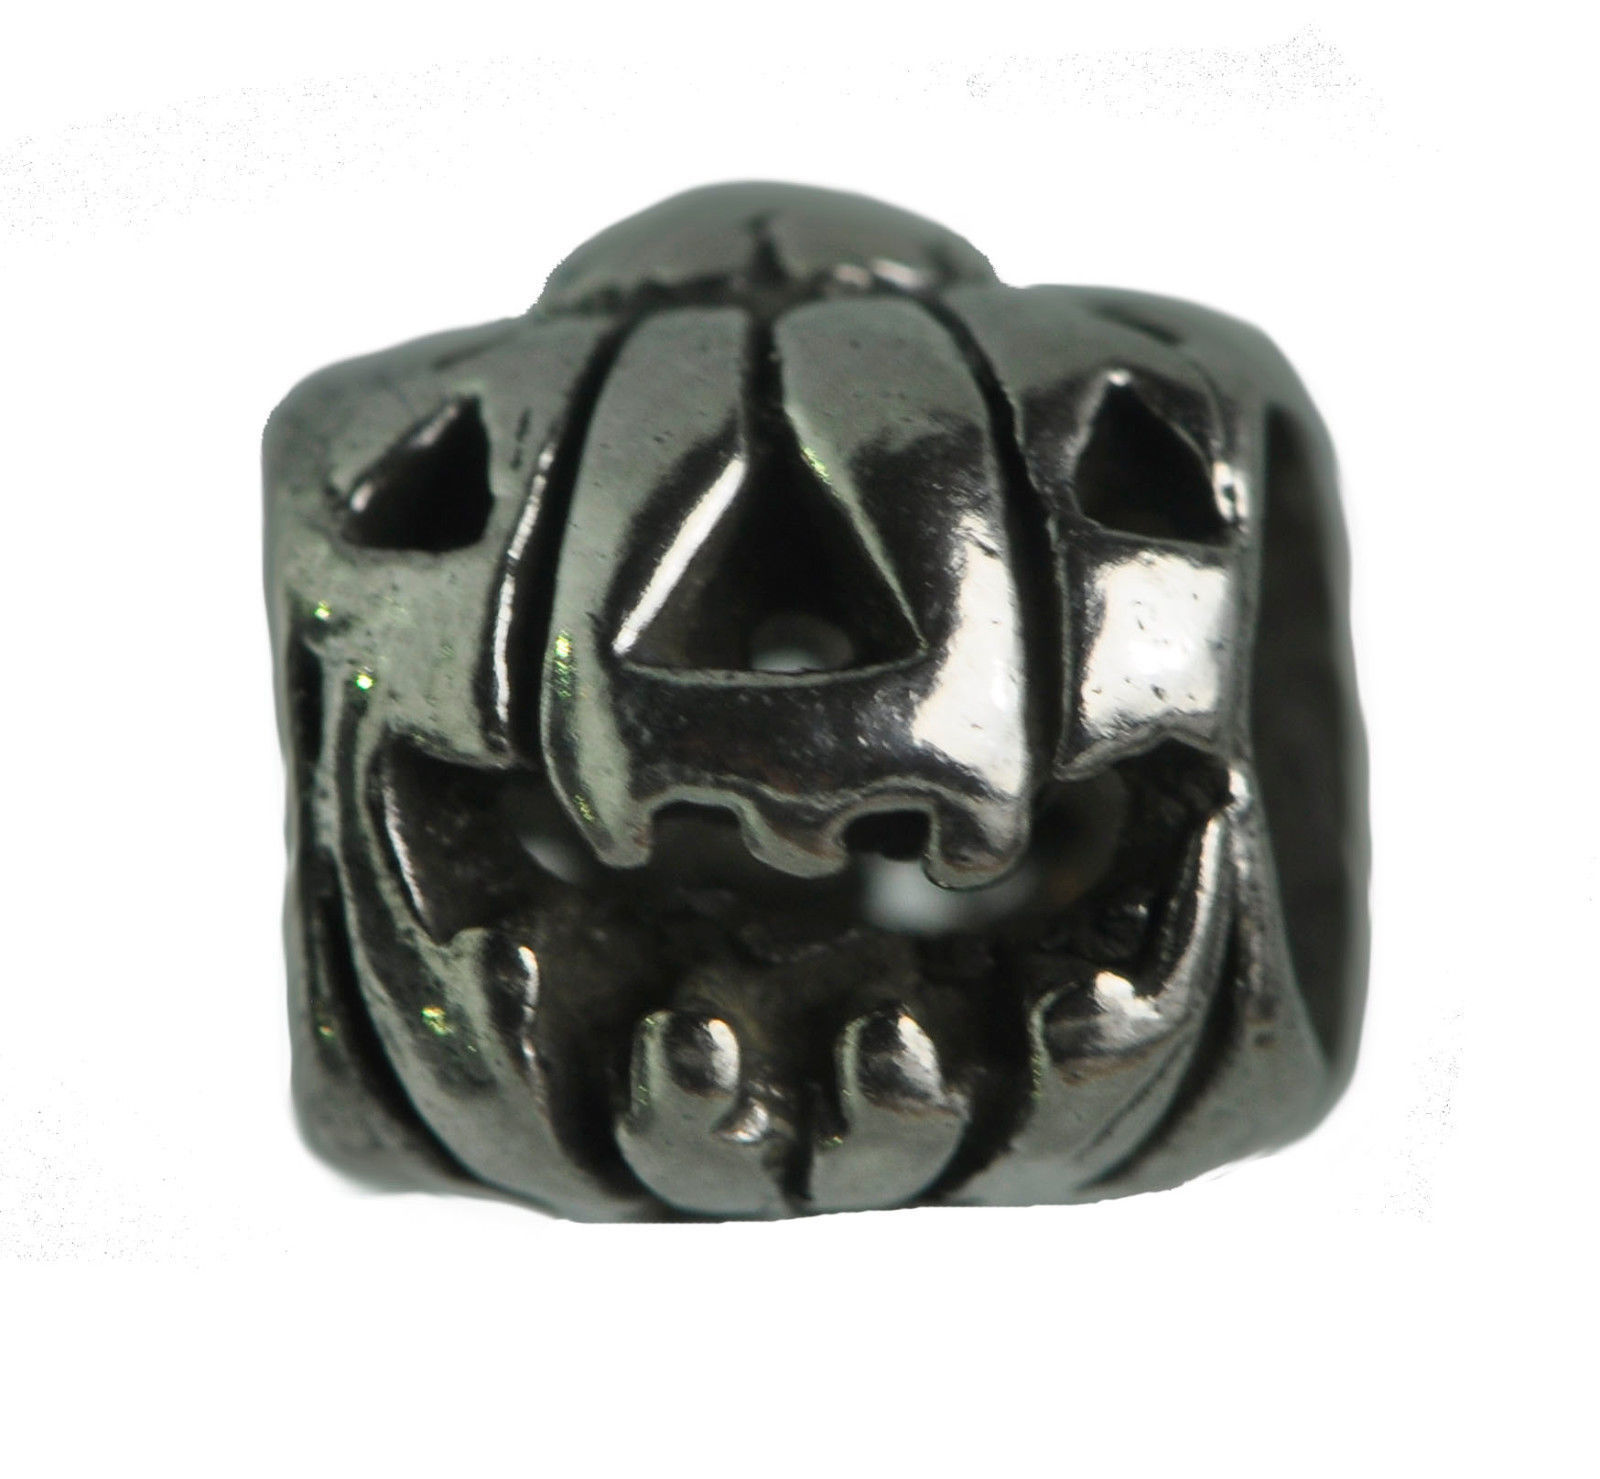 Primary image for HOT Halloween Laugh Pumpkin Charm bead for bracelet Sterling silver Jack-o'-lant